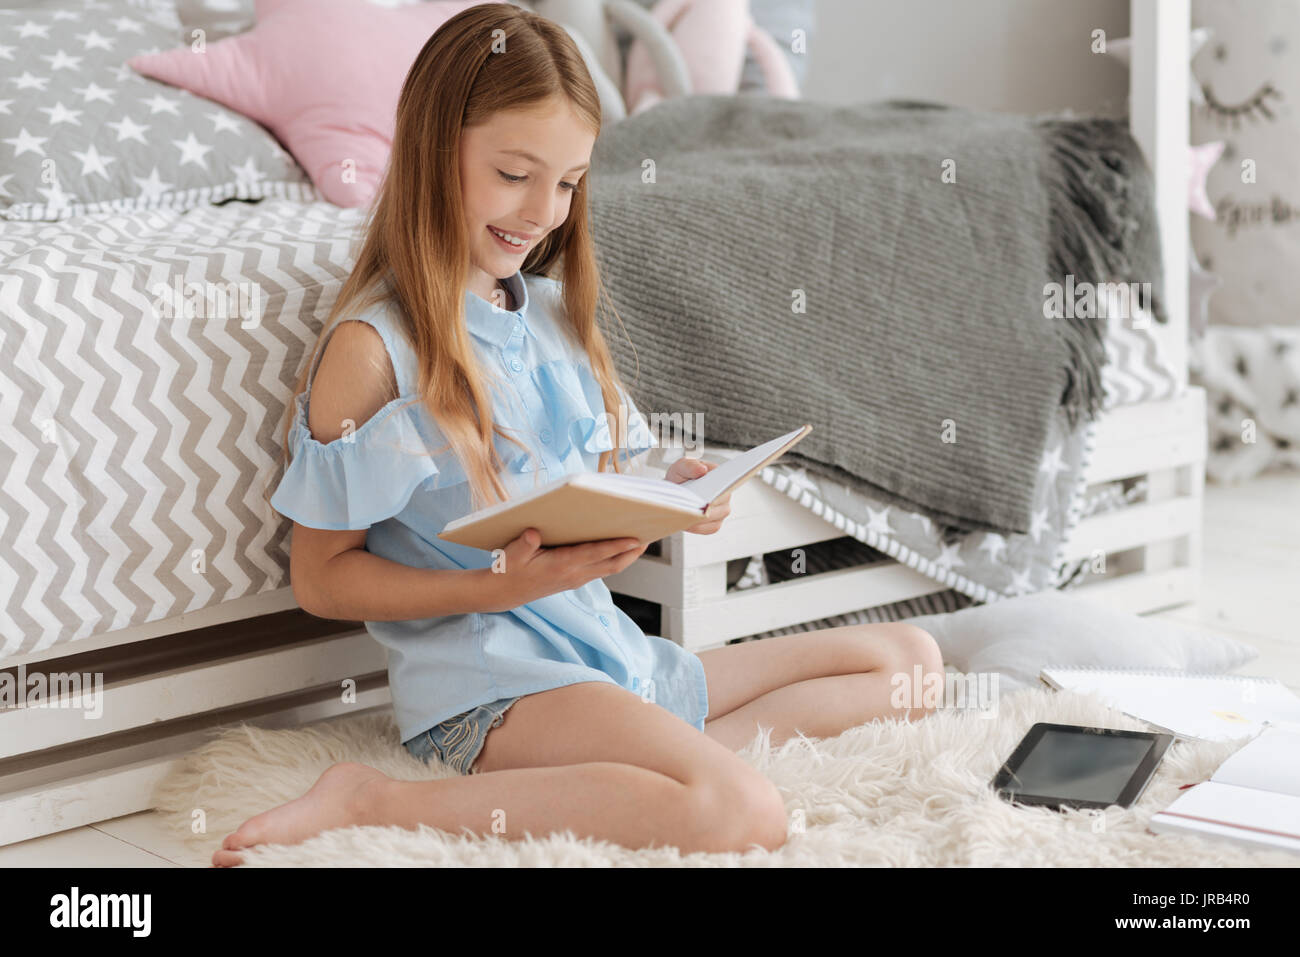 Happy girl smiling while reading book - Stock Image